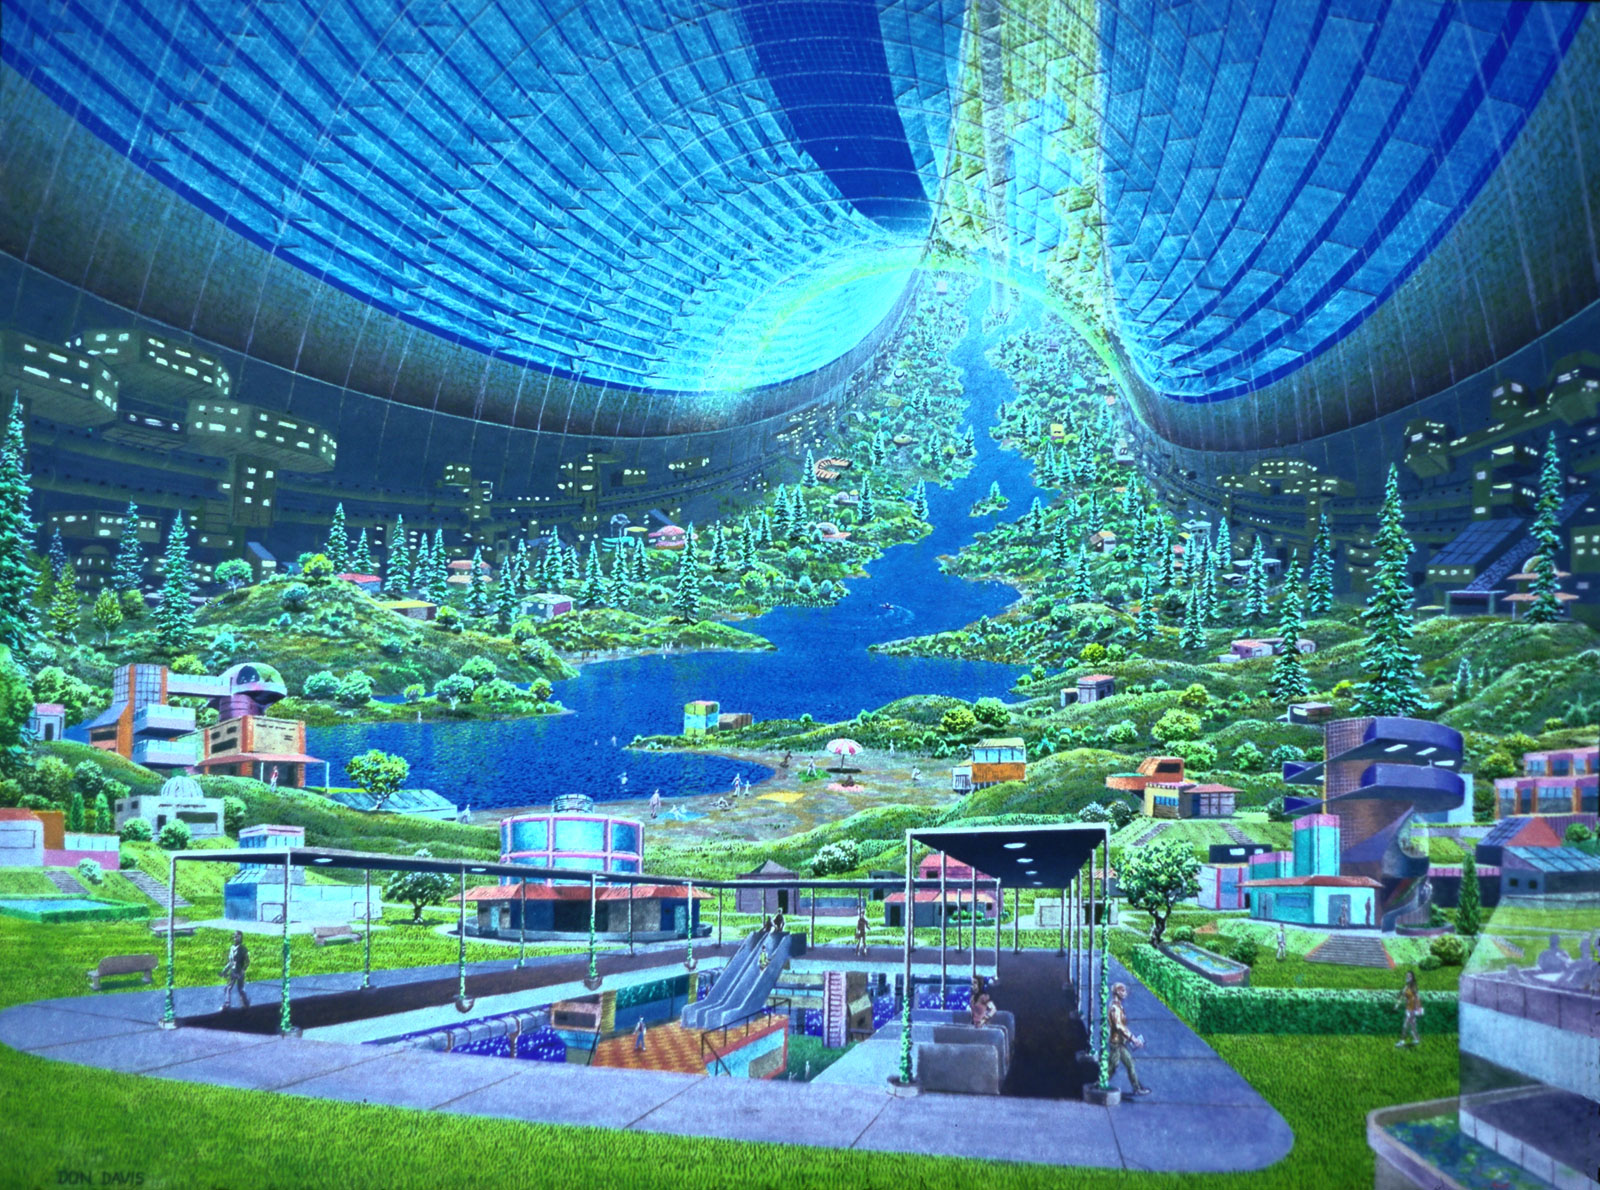 Here is an exle of a utopia